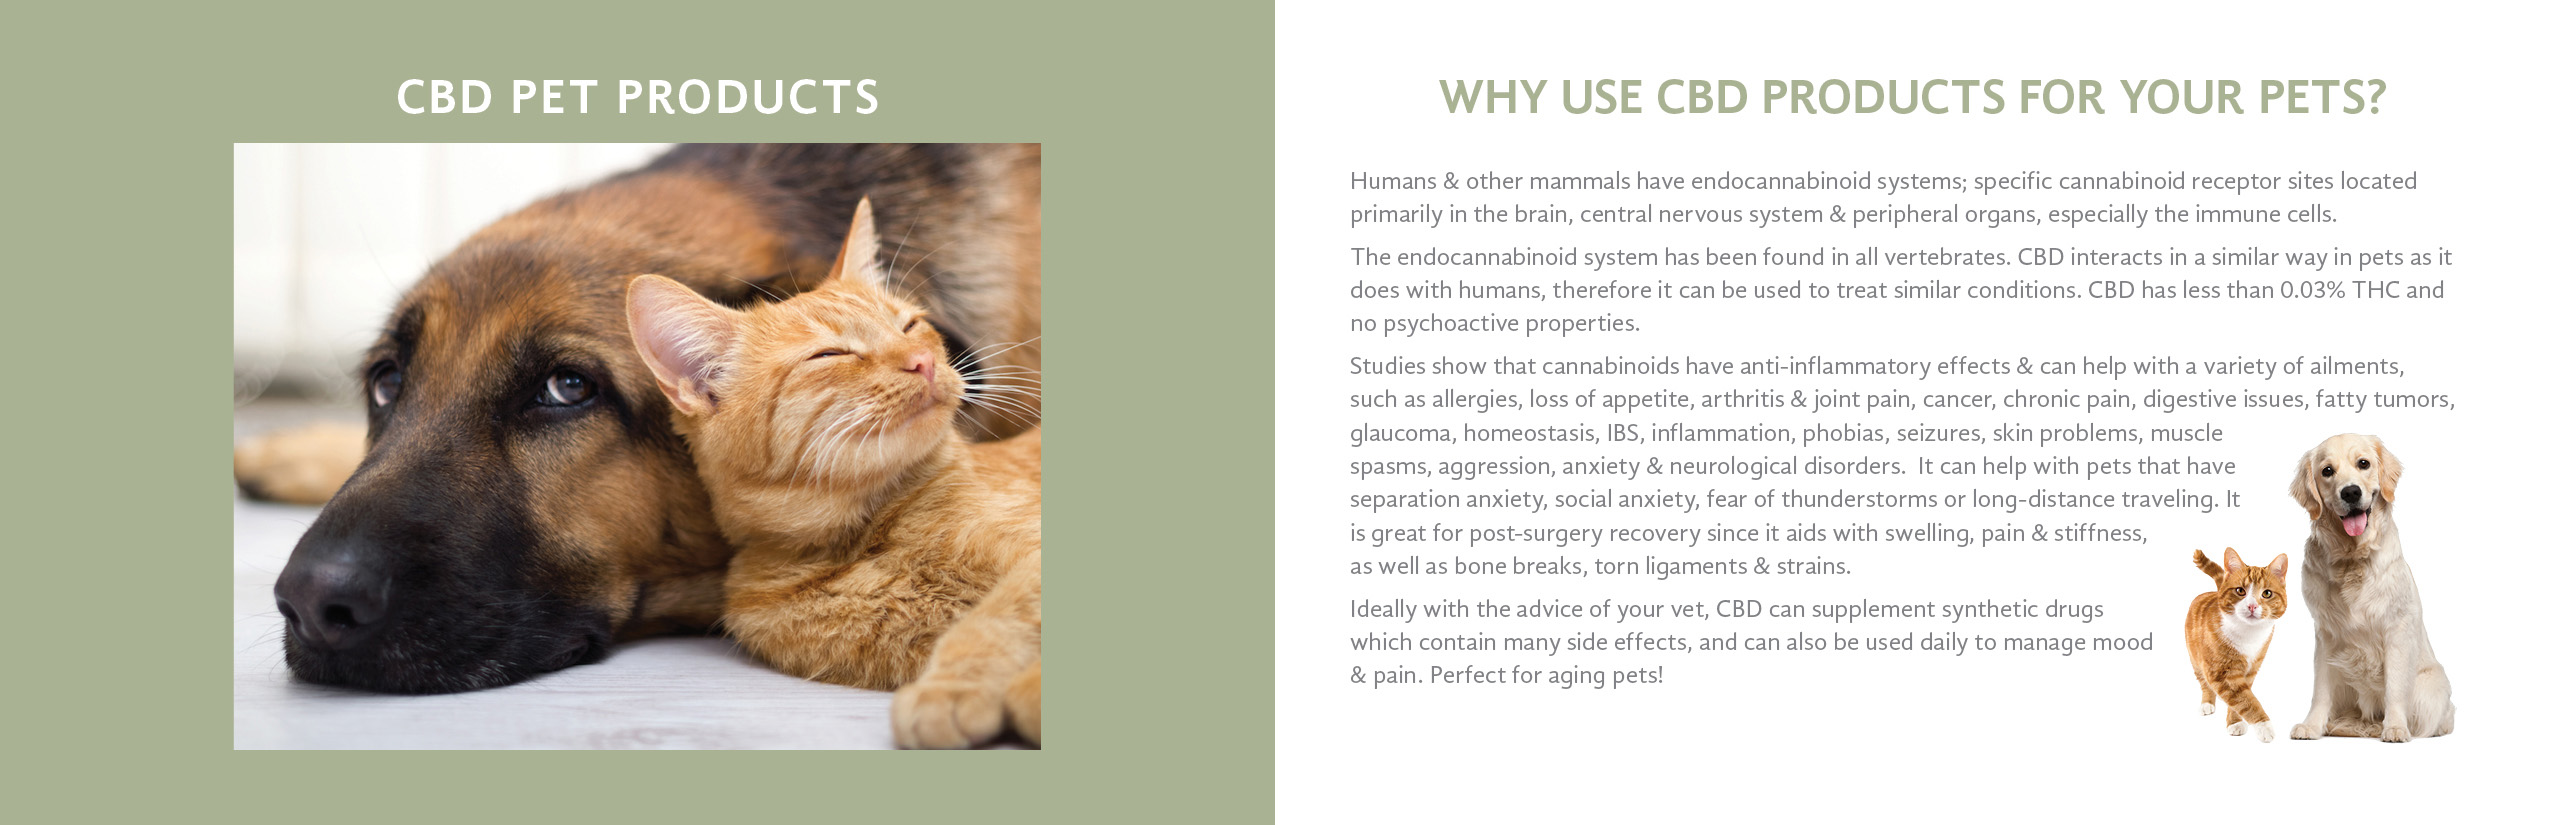 Hemp Cbd Oil for Pets in Canada